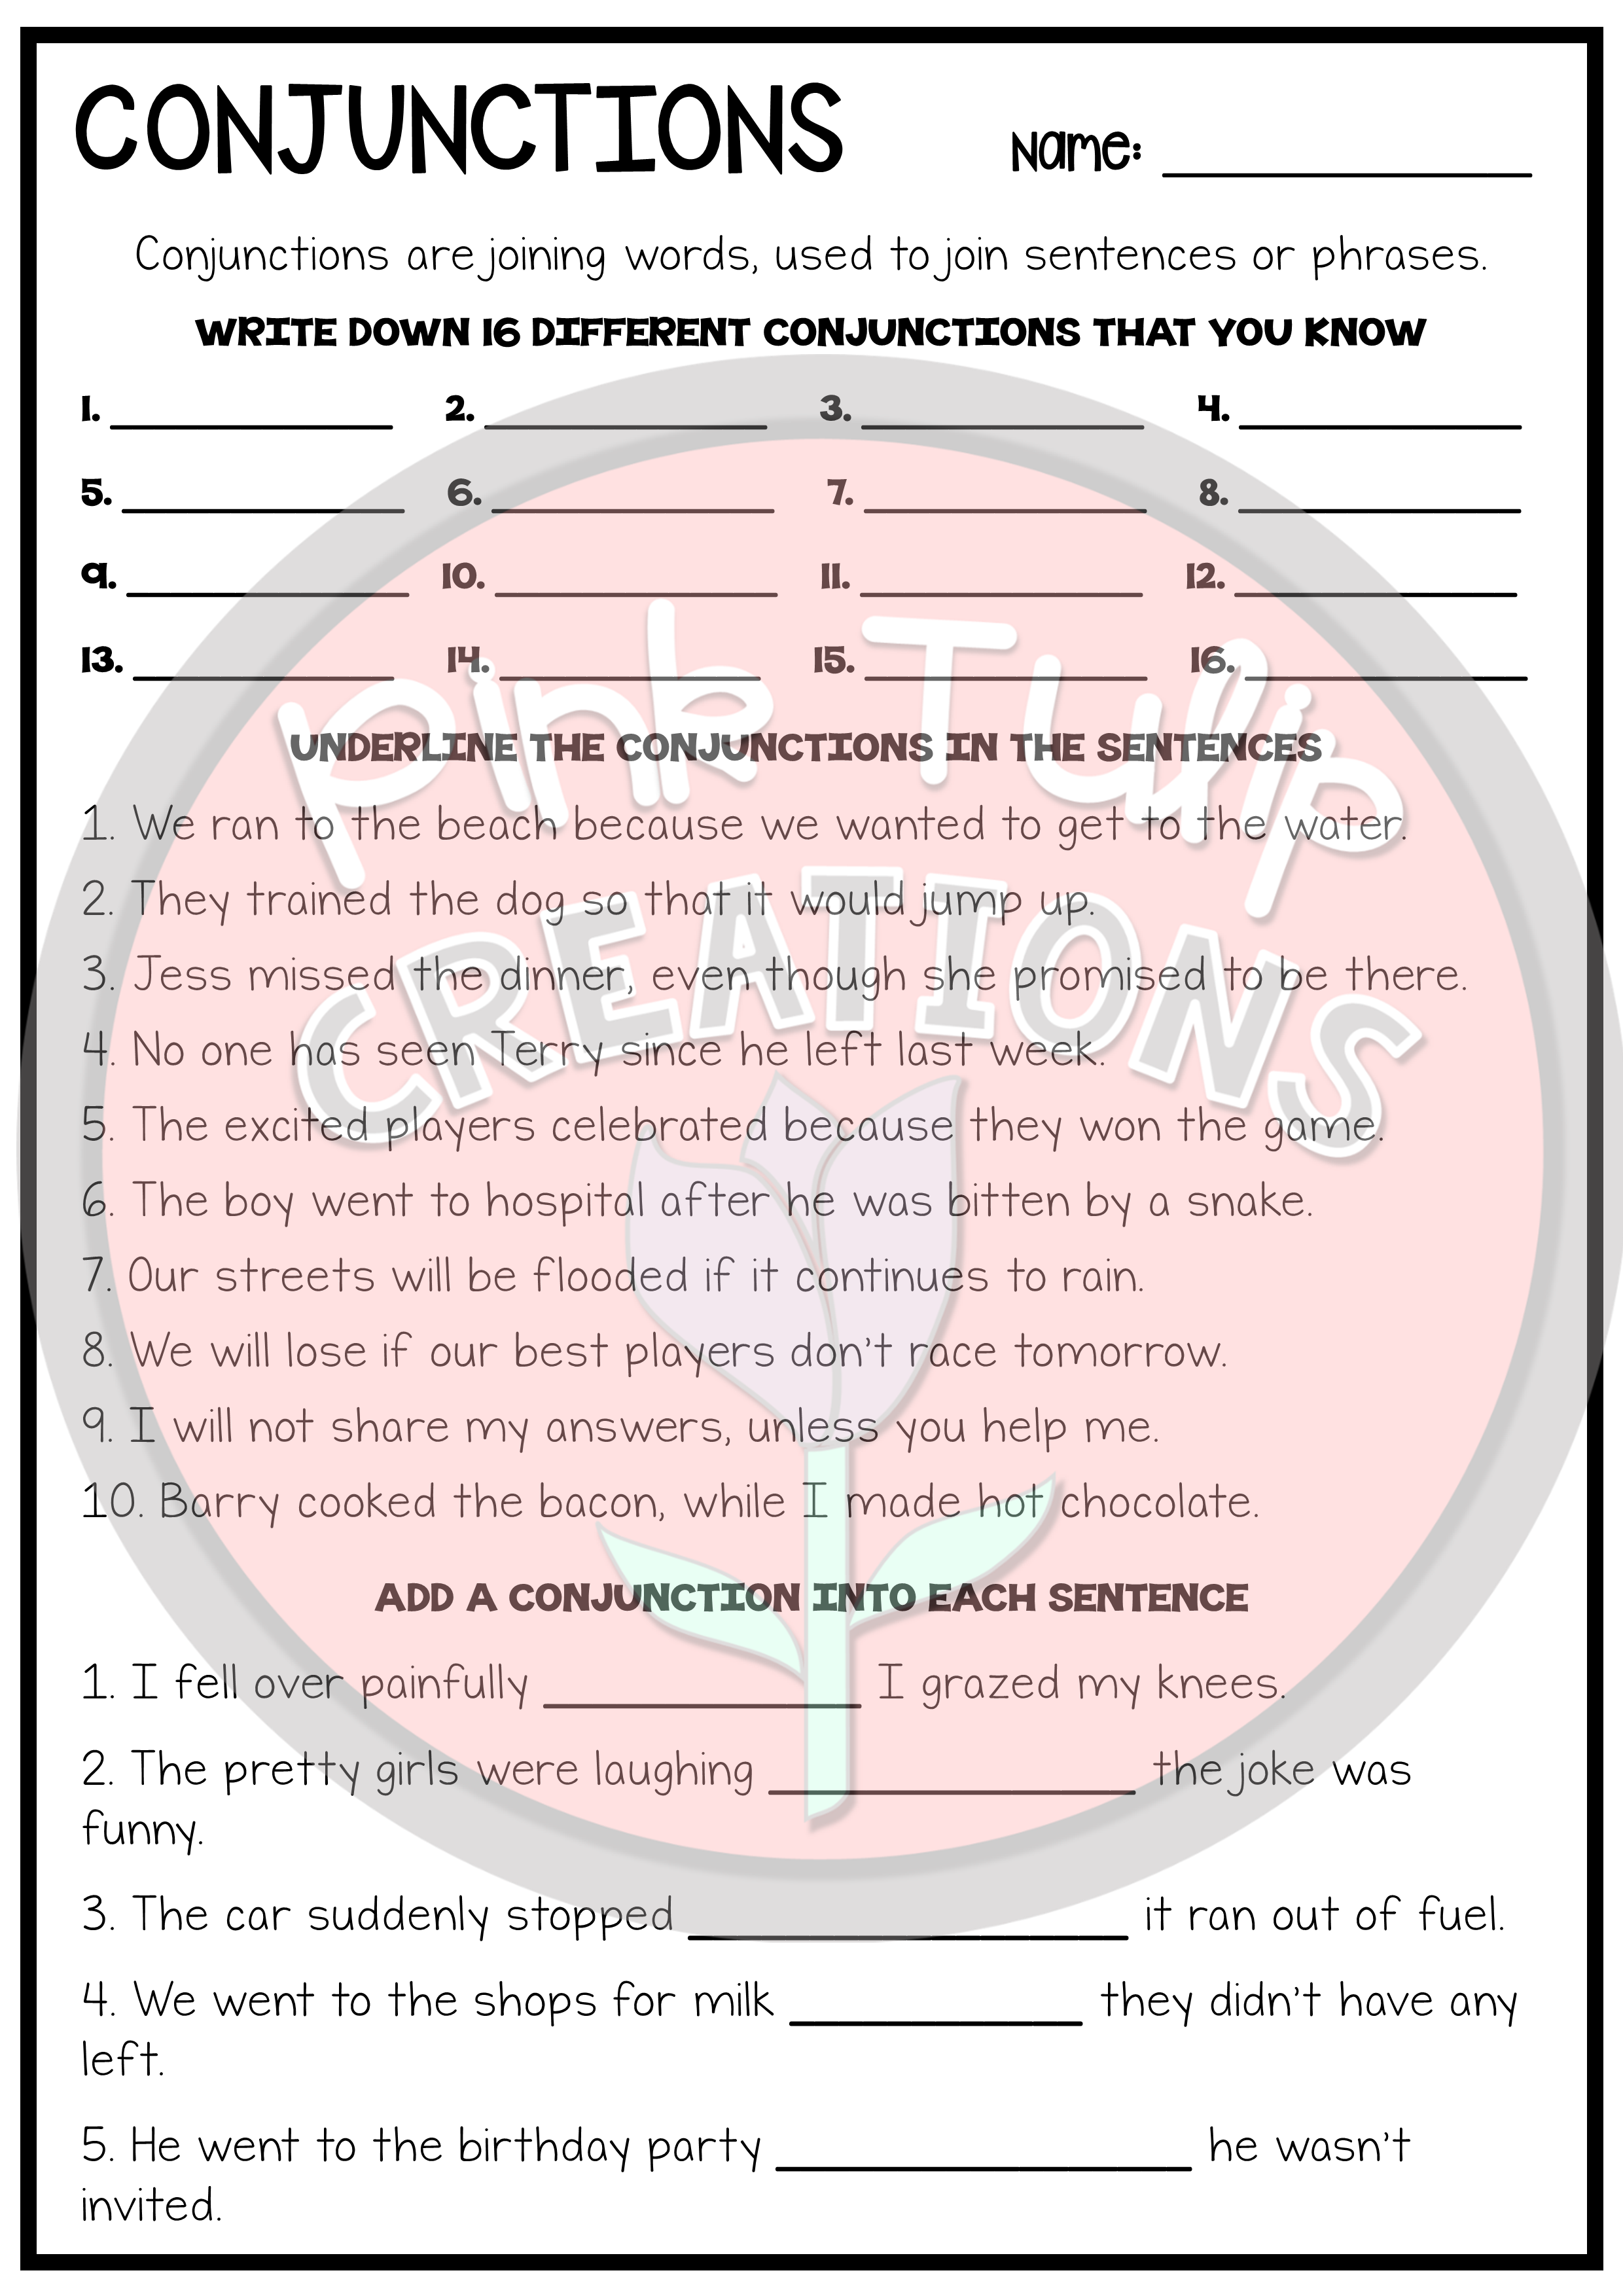 small resolution of Using Conjunctions Worksheet   Printable Worksheets and Activities for  Teachers